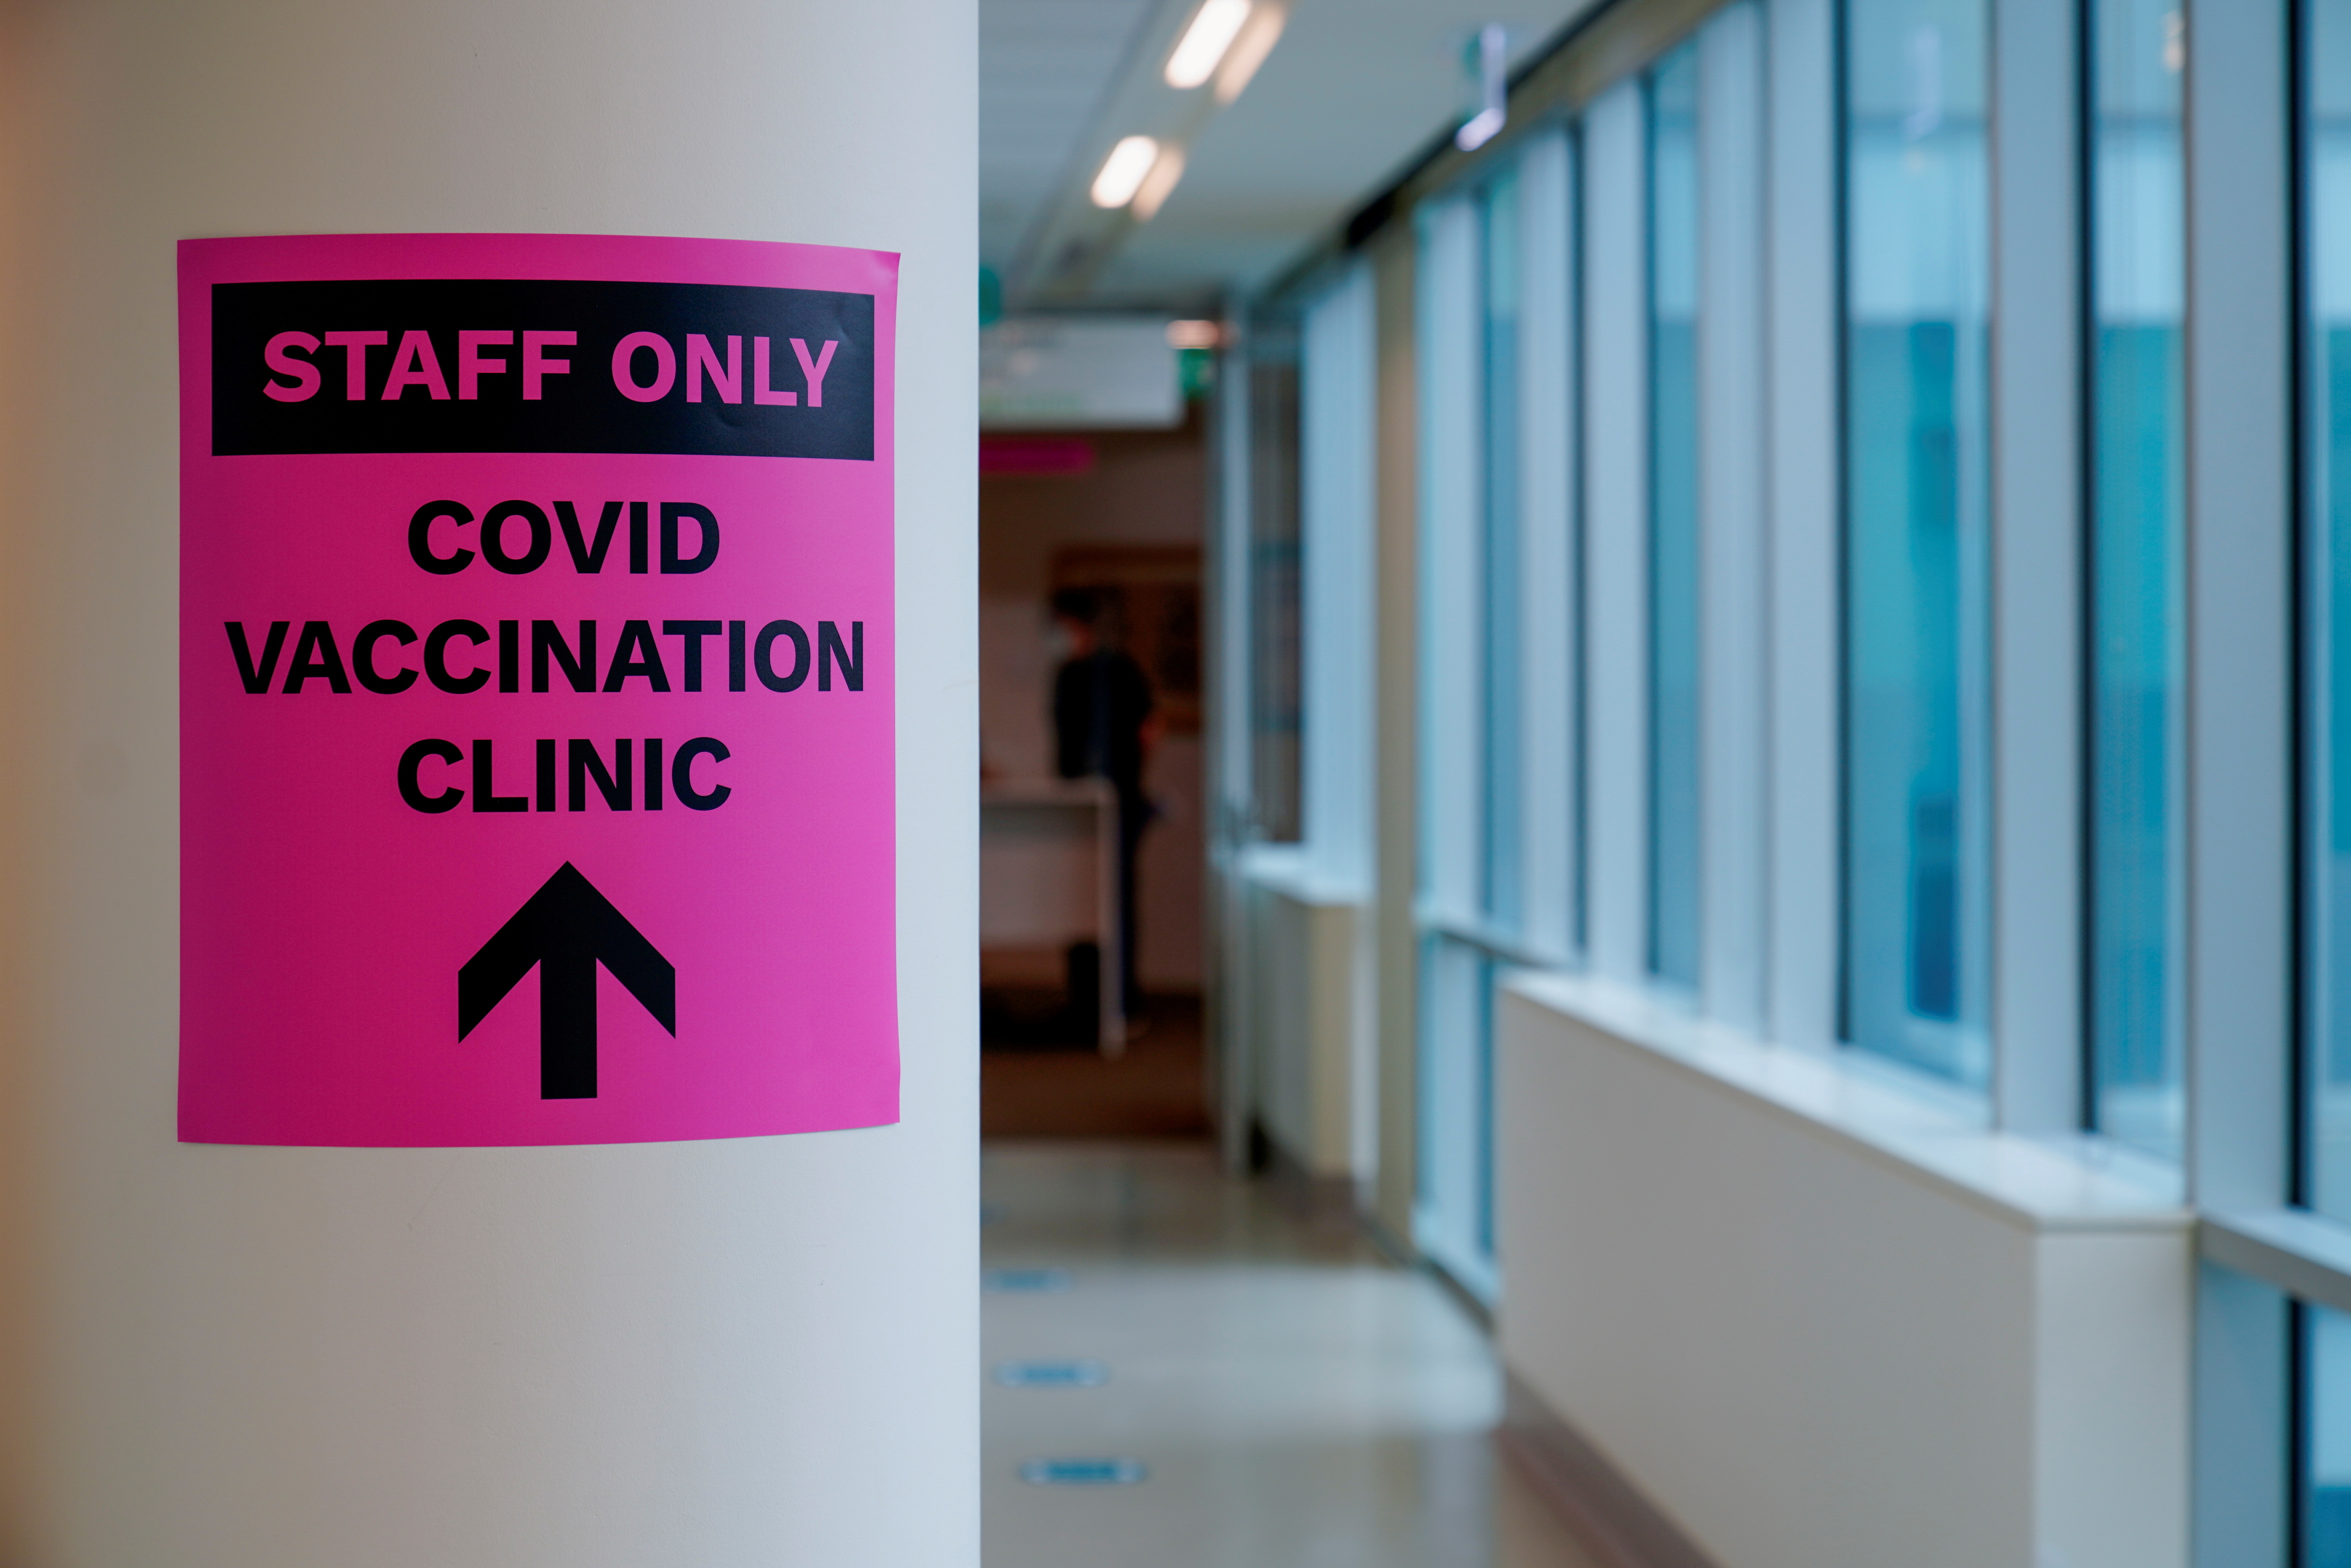 A sign for a COVID-19 vaccination clinic is seen as high-risk workers receive the first vaccines in the state of Victoria's rollout of the program, in Melbourne, Australia, February 22, 2021.  REUTERS/Sandra Sanders/File Photo